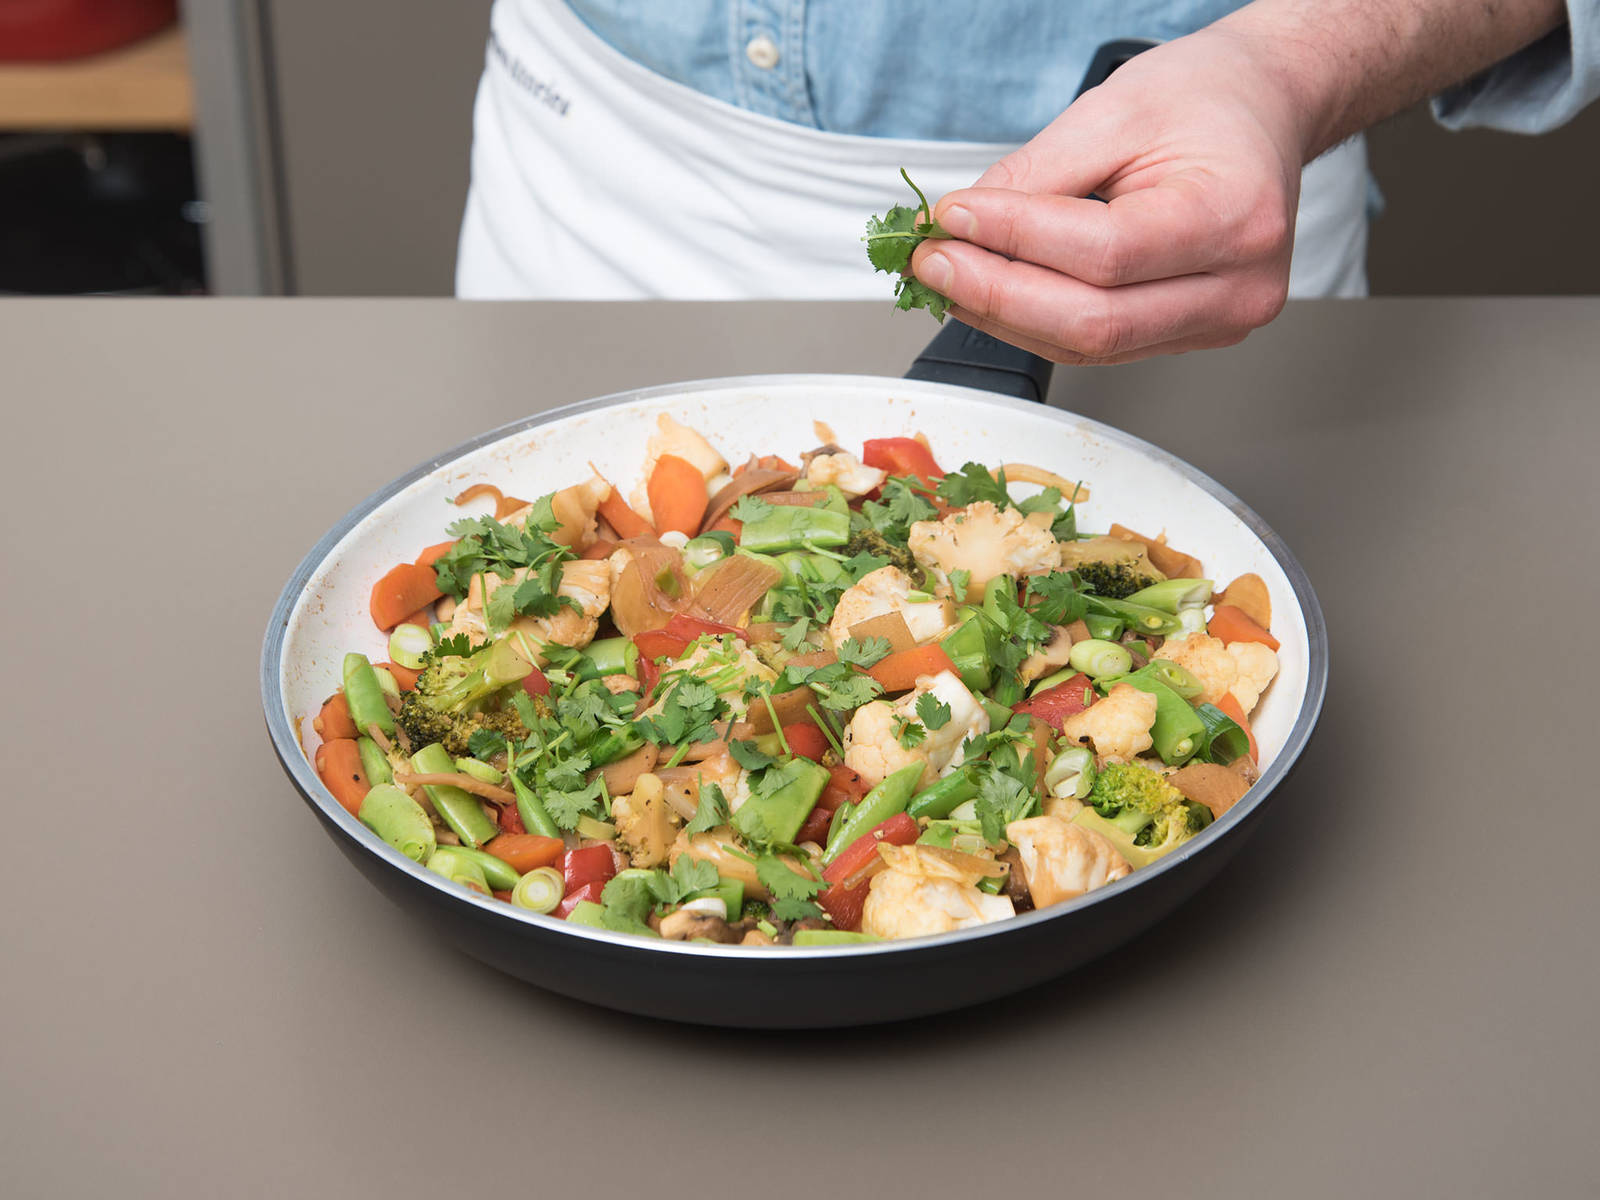 Add bamboo shoots and Chinese cabbage to the pan. Add ginger-lime sauce, stir to combine, and sauté for another 7 – 10 min. Add snow peas and season to taste with salt and pepper. Finally, stir in sliced green onion. Remove from heat. Garnish with cilantro and enjoy with rice!